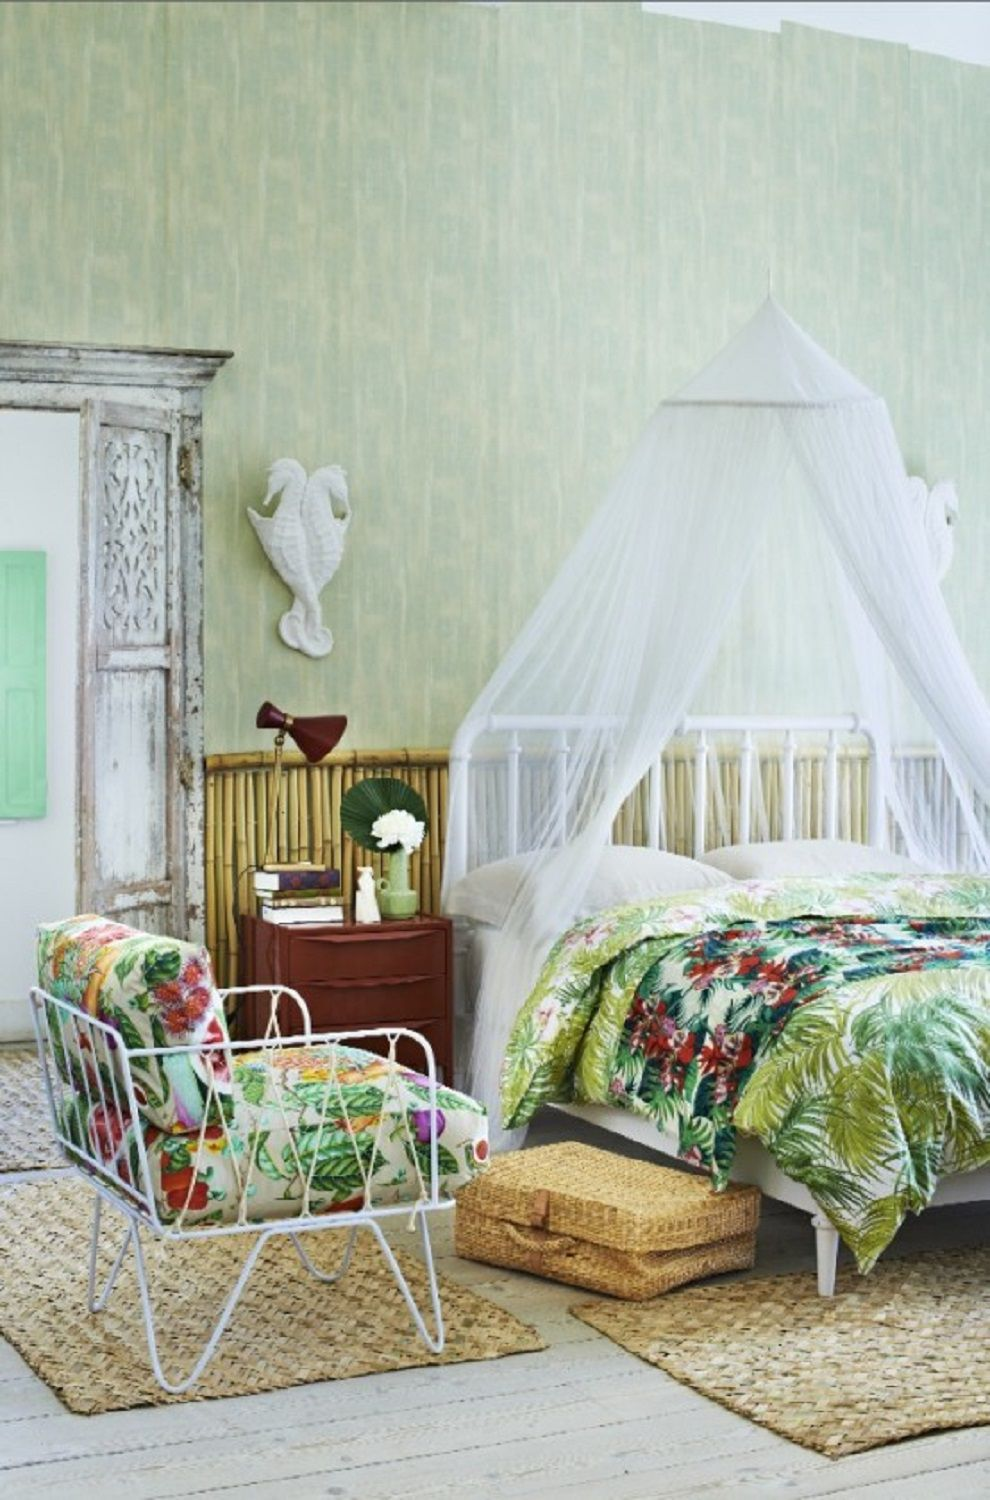 title | Tropical Bedroom Decorating Ideas Photos